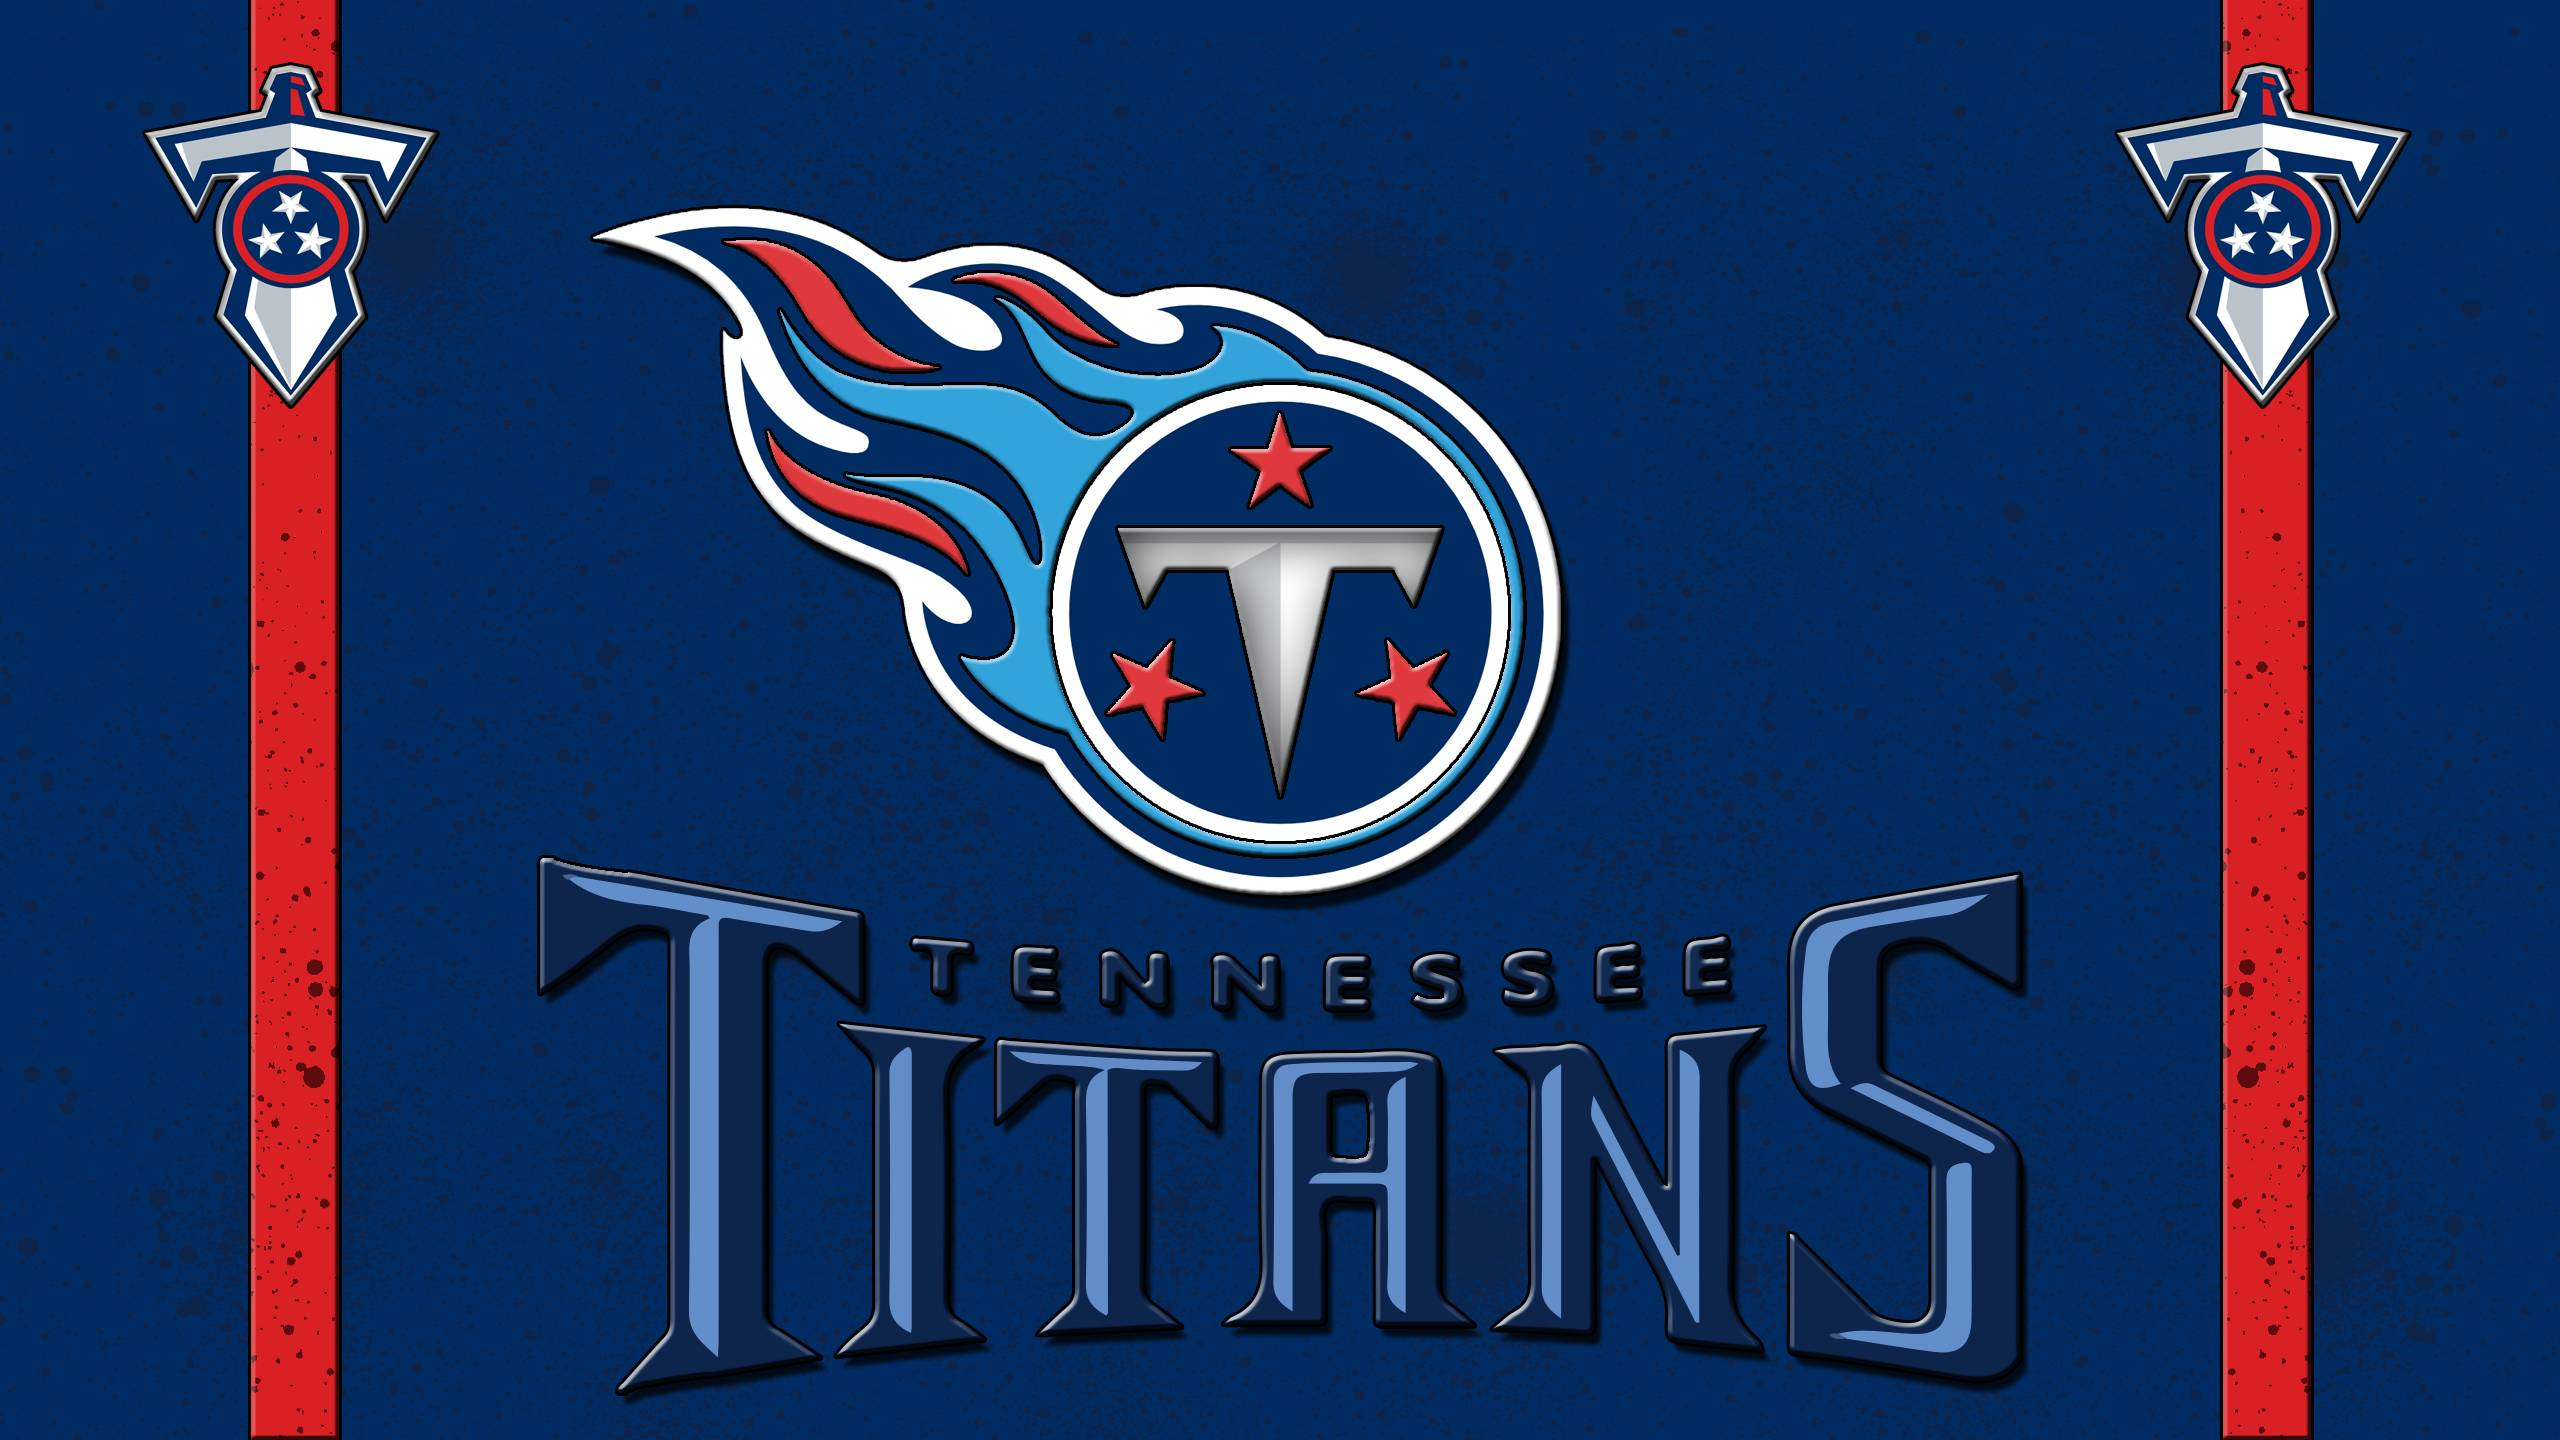 Tennessee Titans by BeAware8